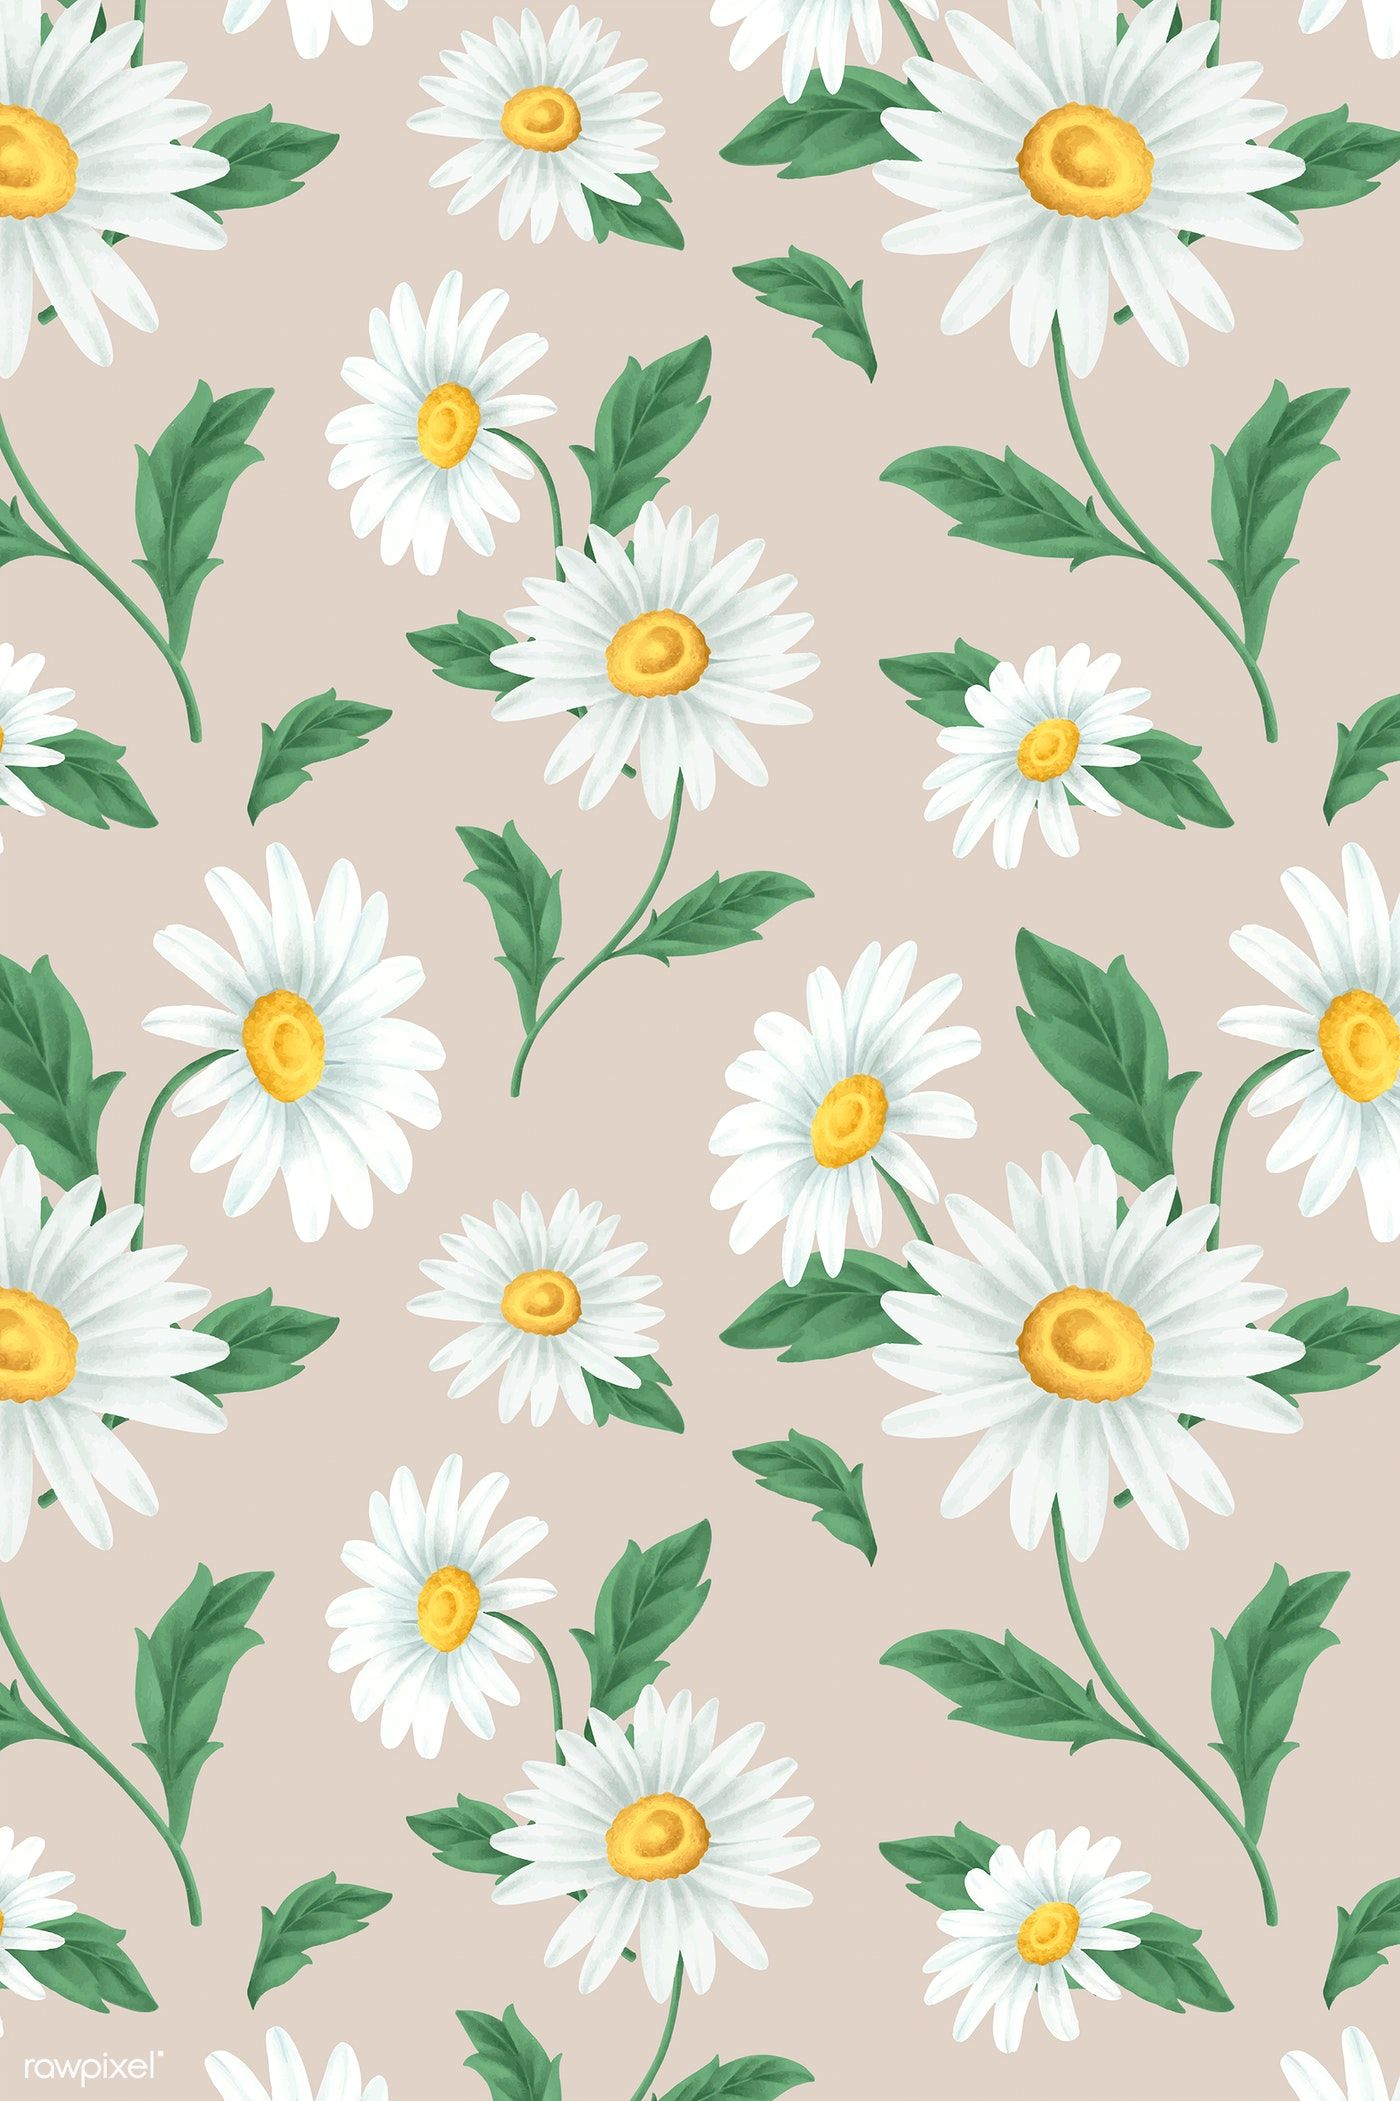 Download Premium Vector Of White Daisy Flower Seamless Patterned Daisy Painting Flower Background Wallpaper Daisy Wallpaper